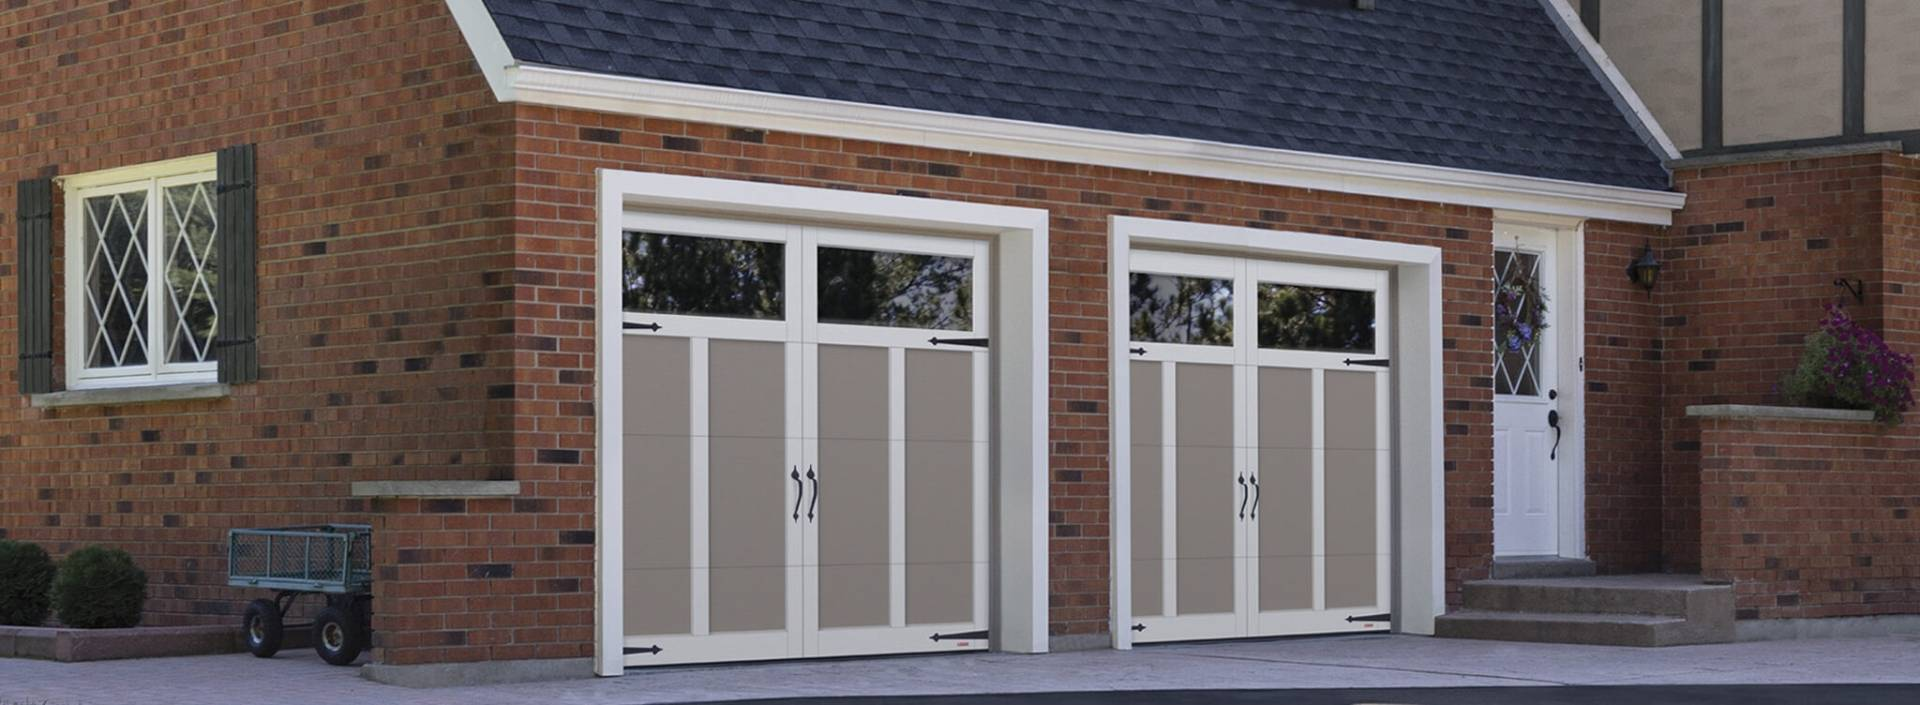 Eastman E-12, 8' x 7', Claystone doors and Ice White overlays, Panoramic Clear windows